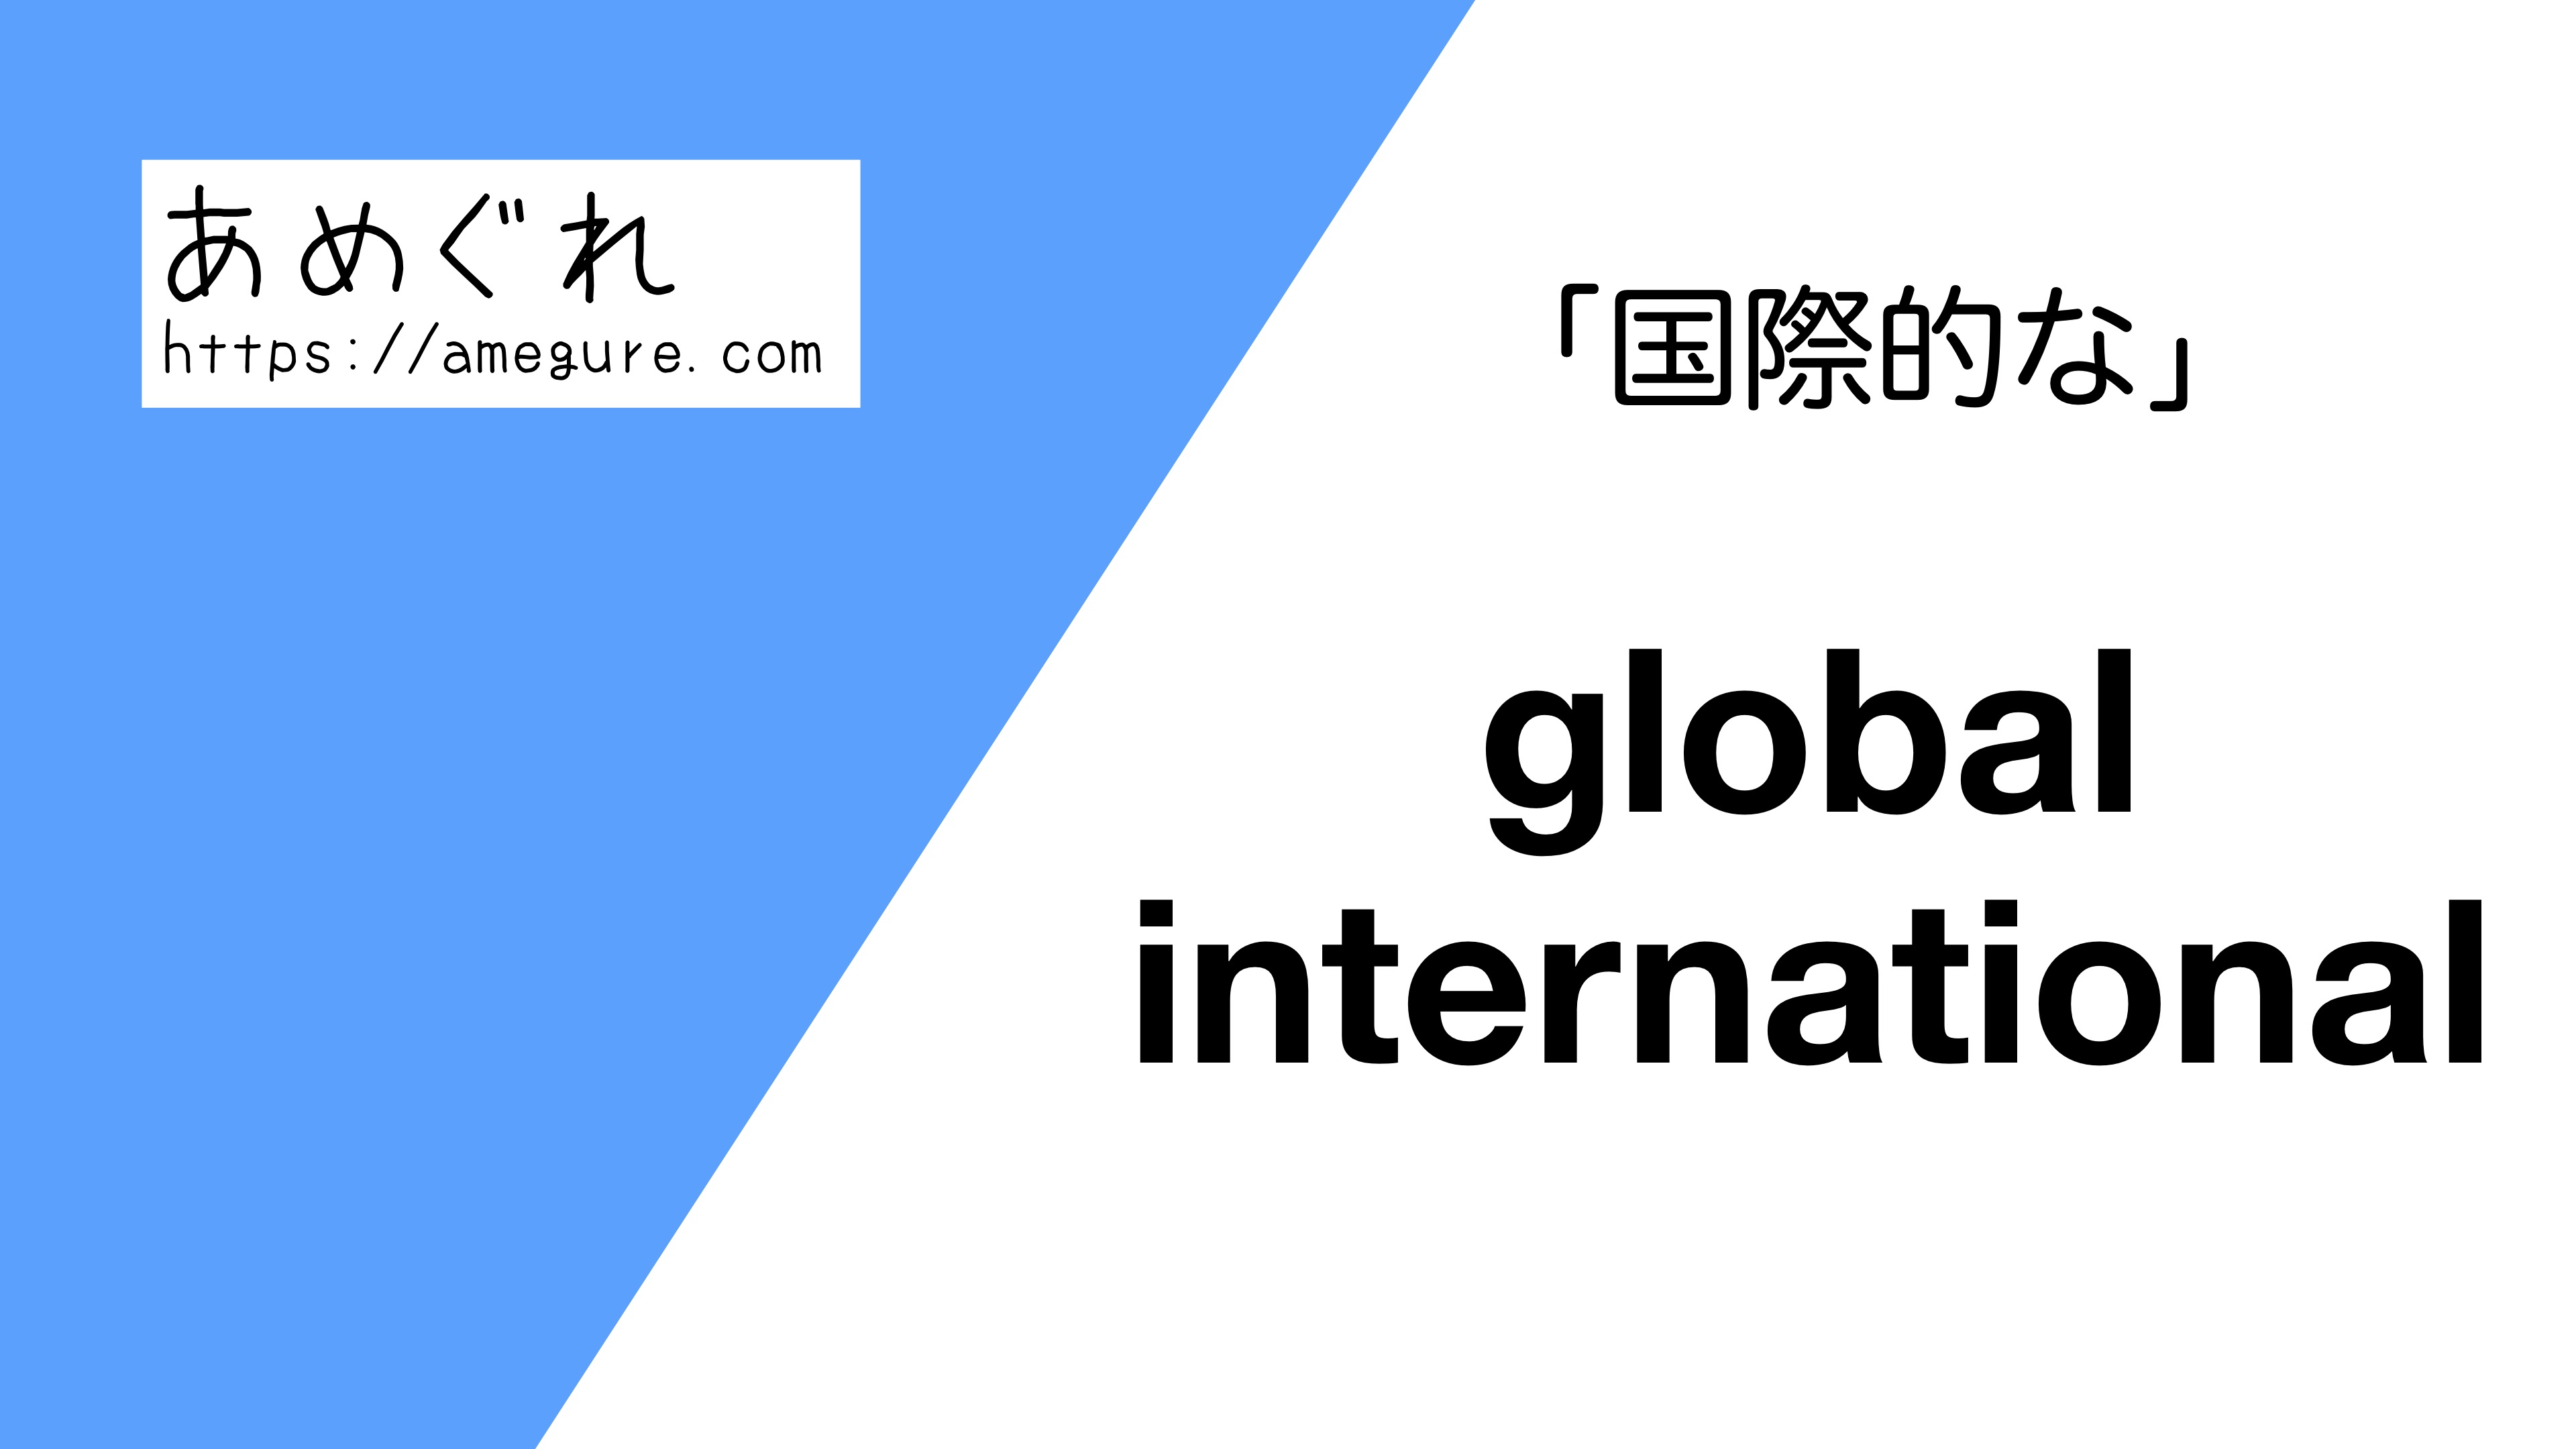 global-international違い